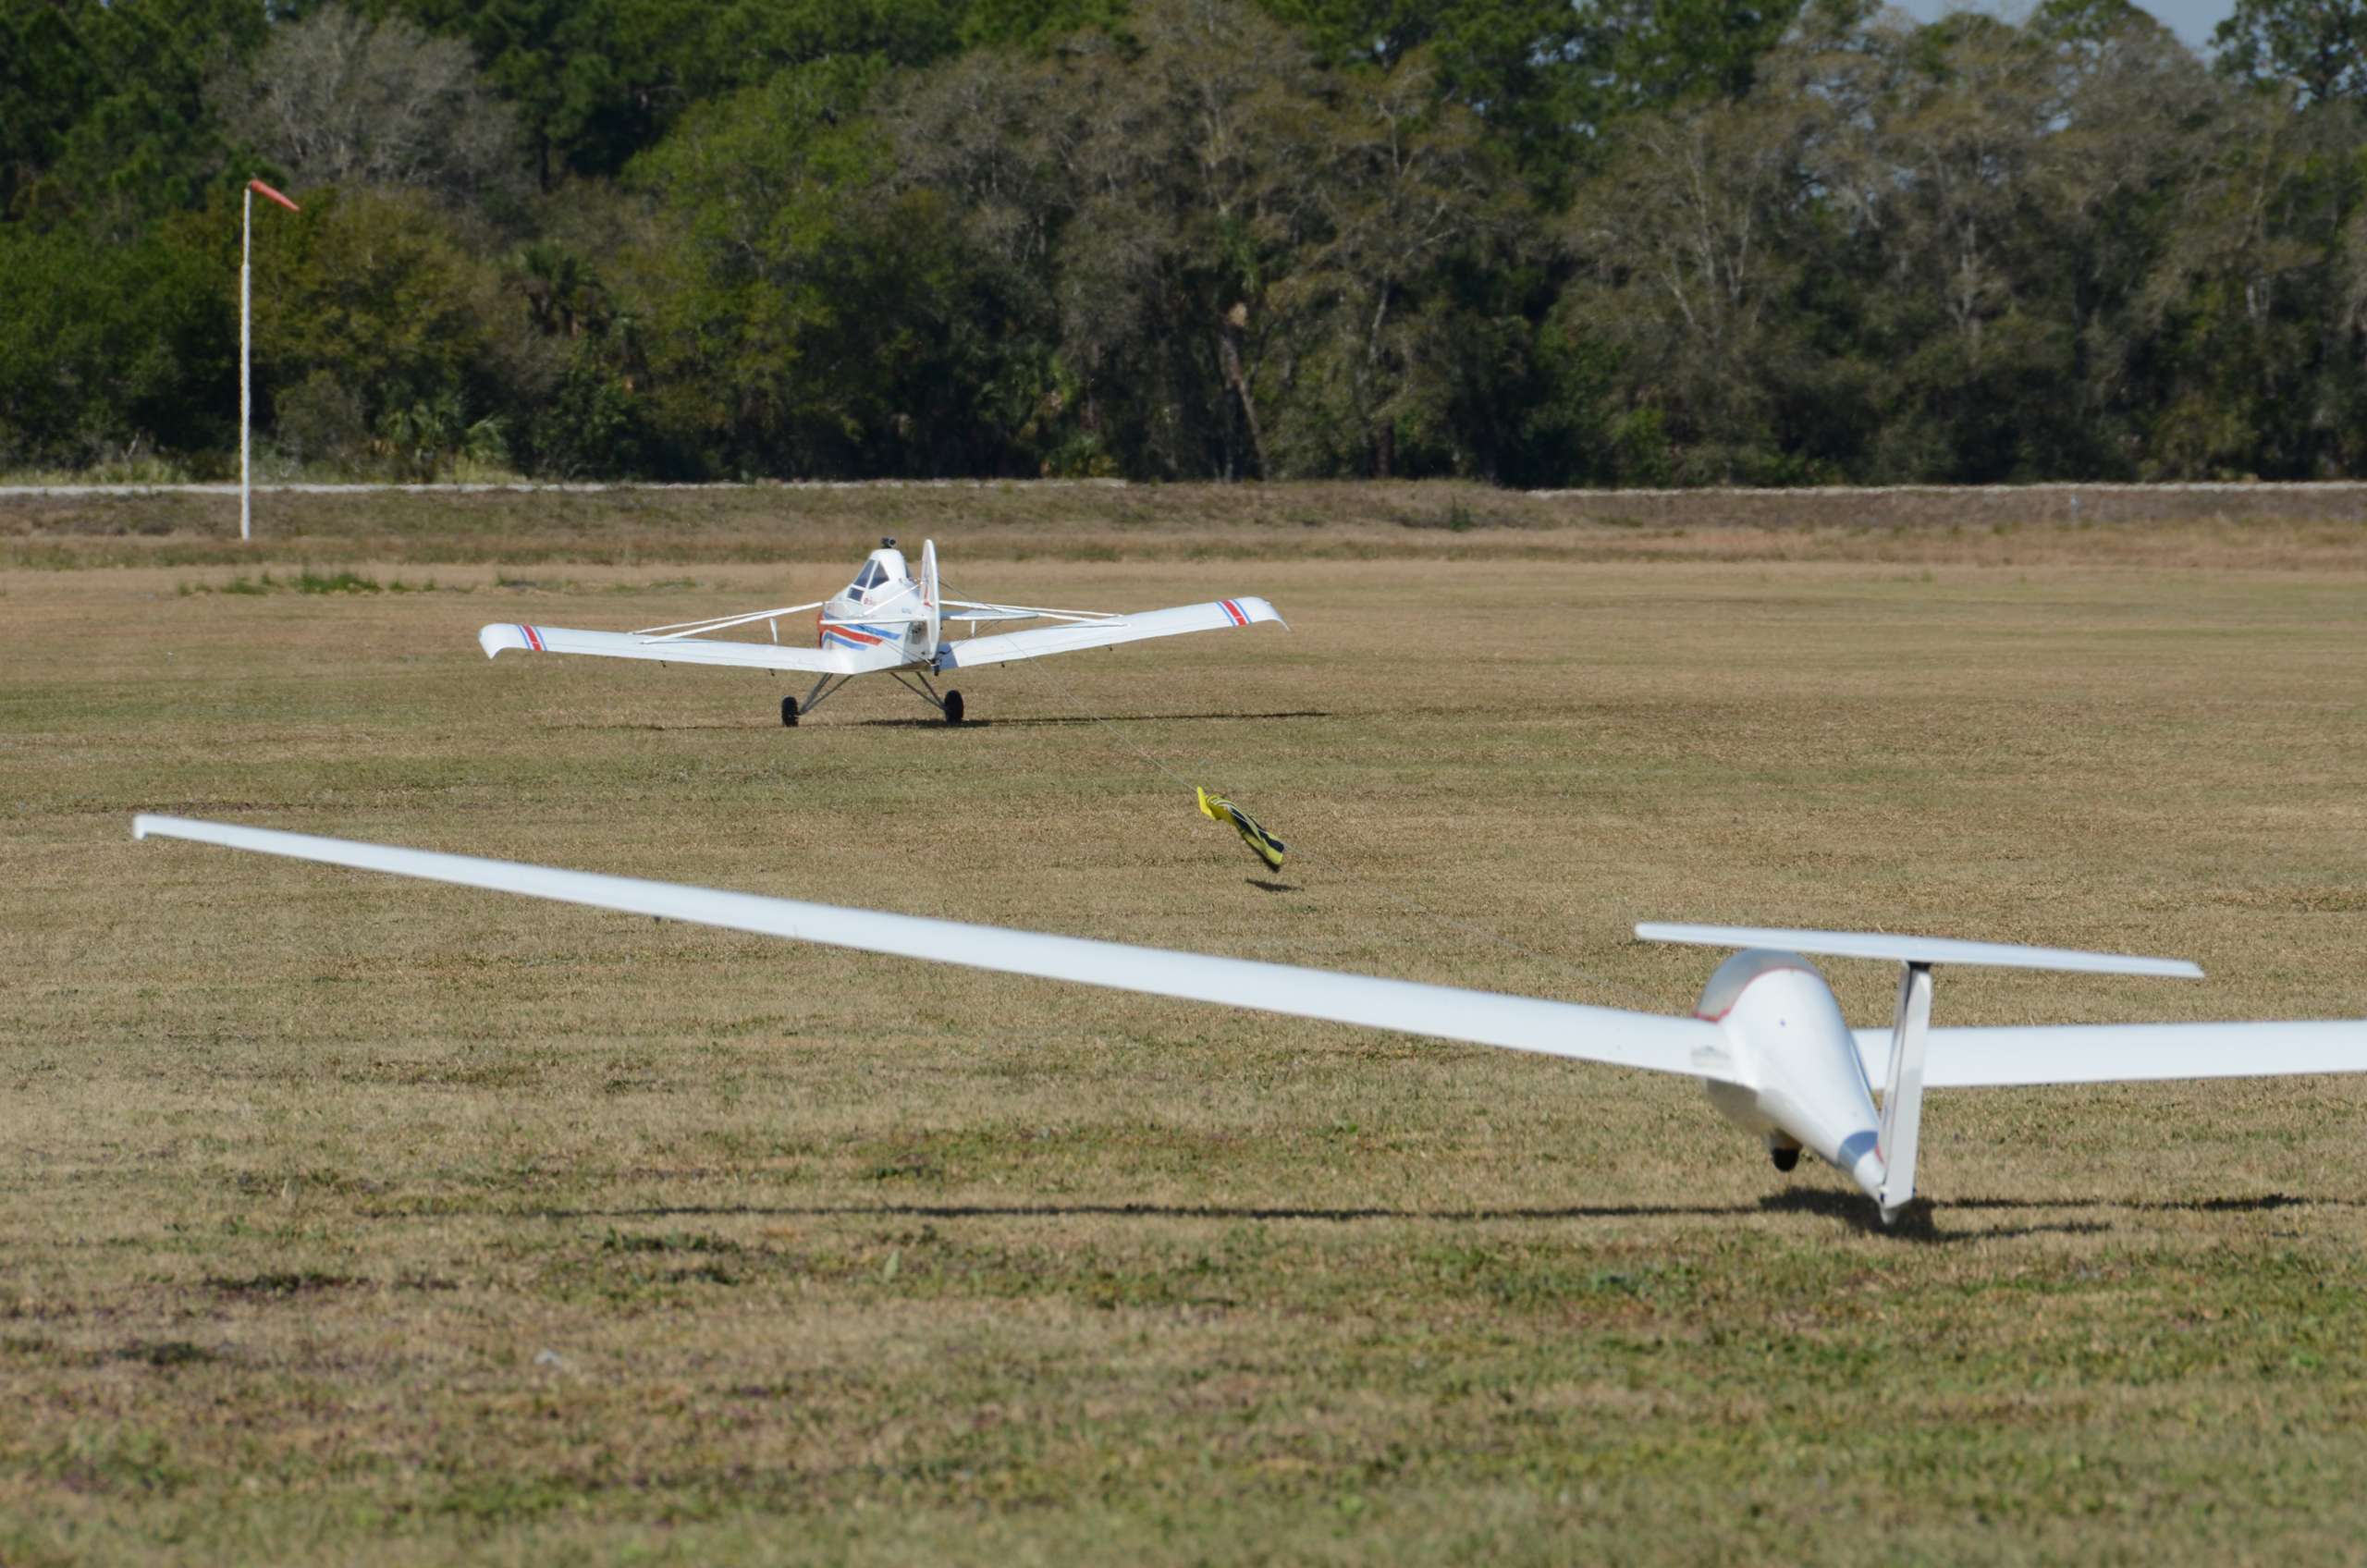 Kris' DG1000 lifts-off ever so gently, in unison with John's Pawnee. Tow Pilot-Glider Pilot coordination at its best!